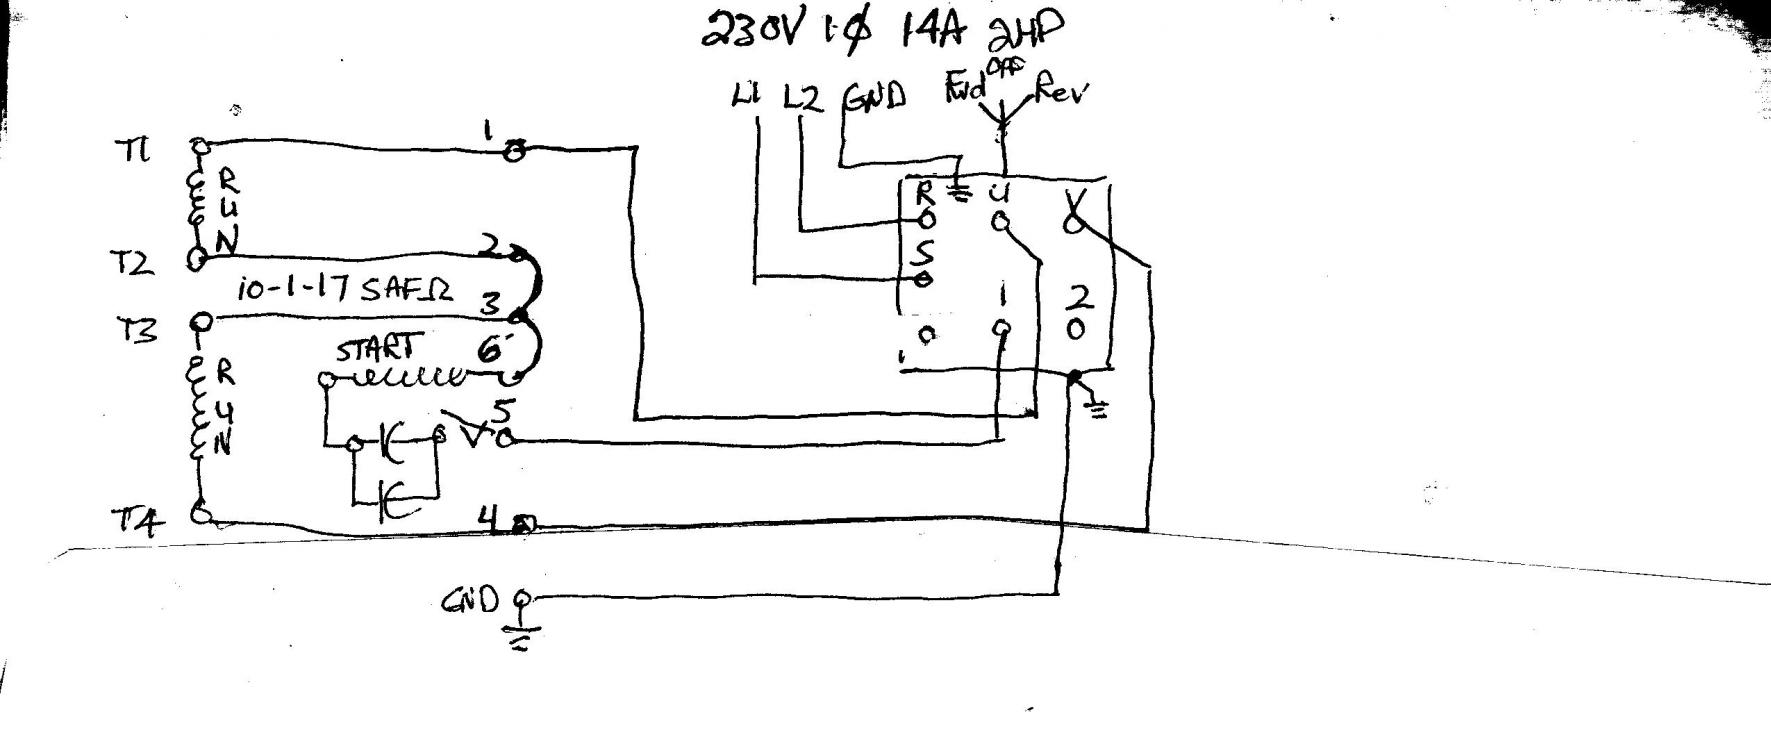 For A 2004 Freightliner Jacobs Engine Brake Wiring Diagram